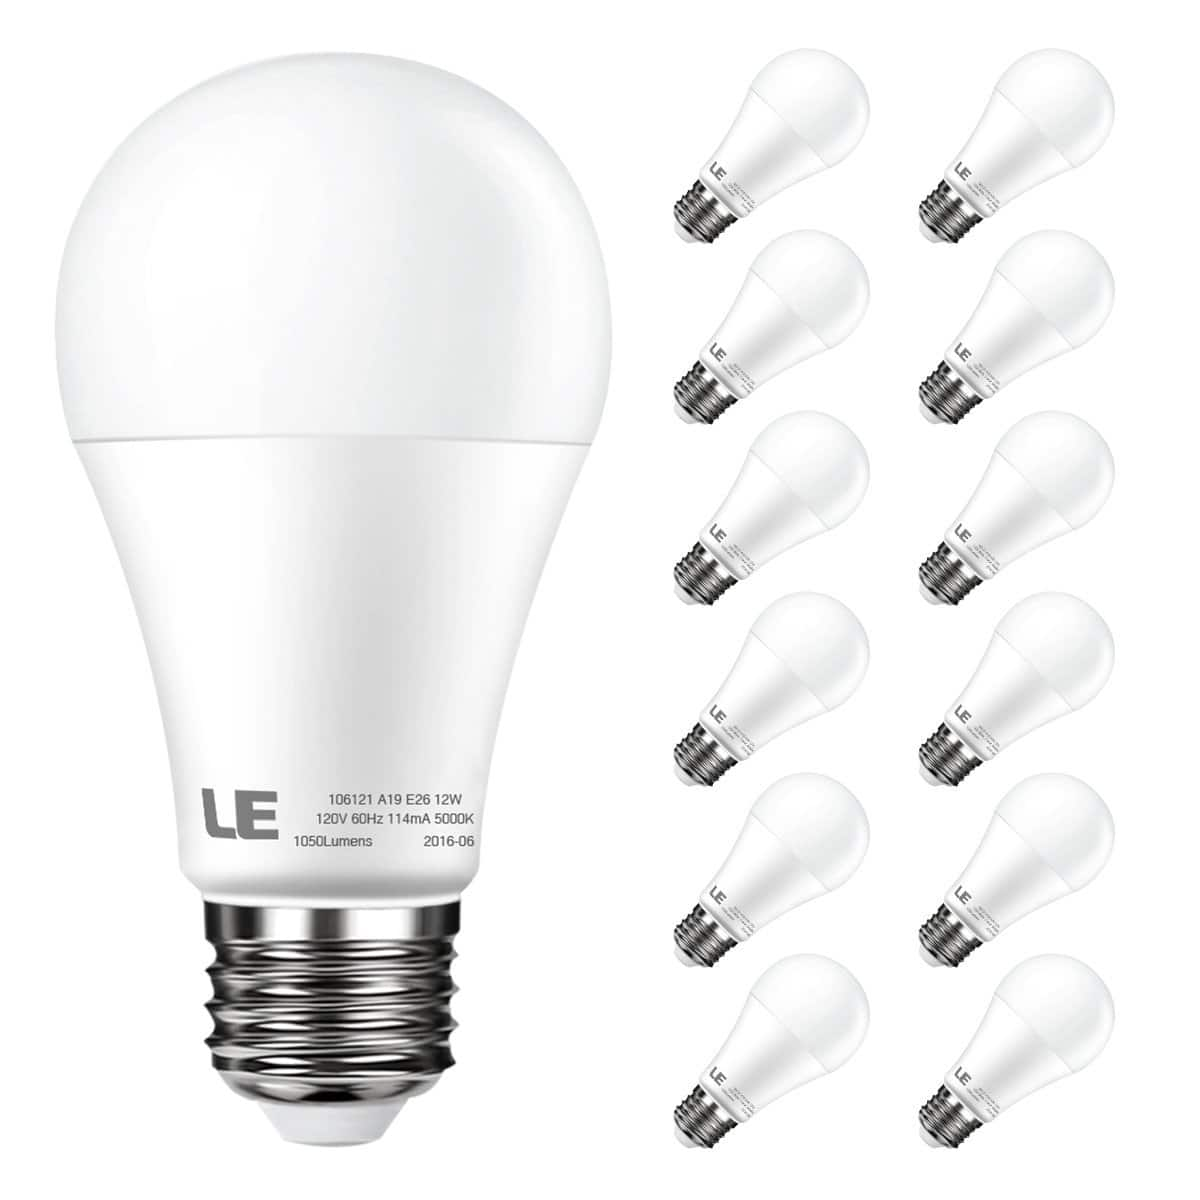 12 pack 12W Non-Dimmable A19 E26 LED Bulbs $19.99 Free Shipping W/Amazon Prime